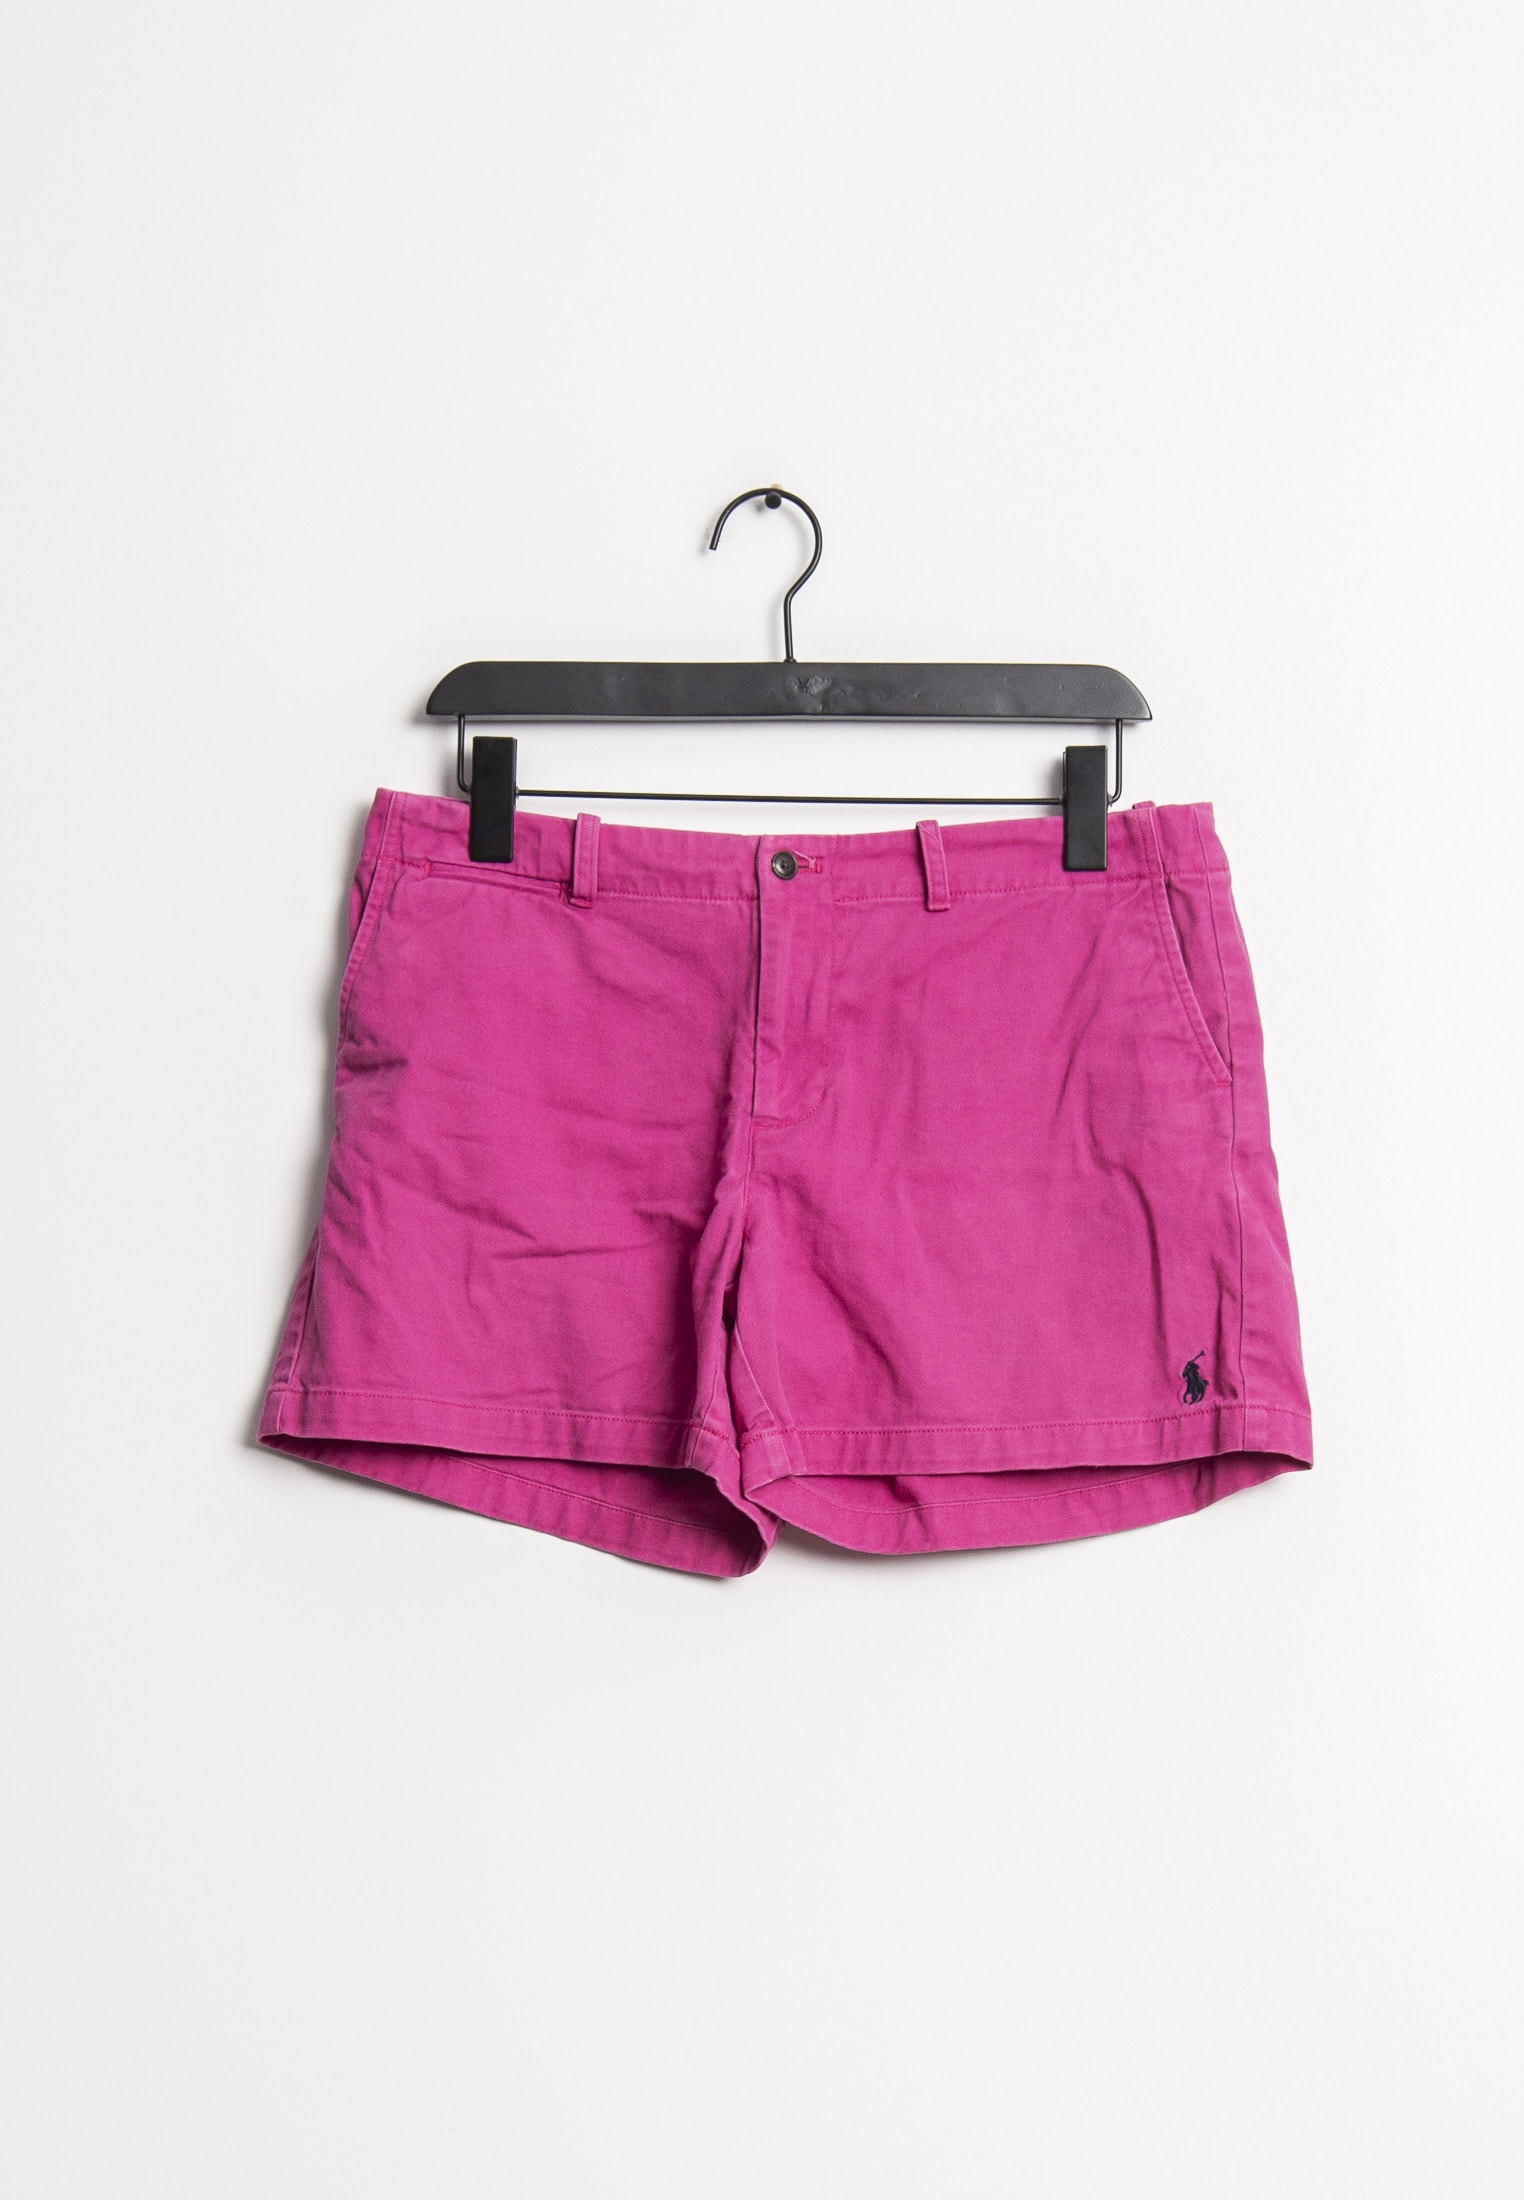 Lauren Ralph Lauren Woman shorts, pink, 38